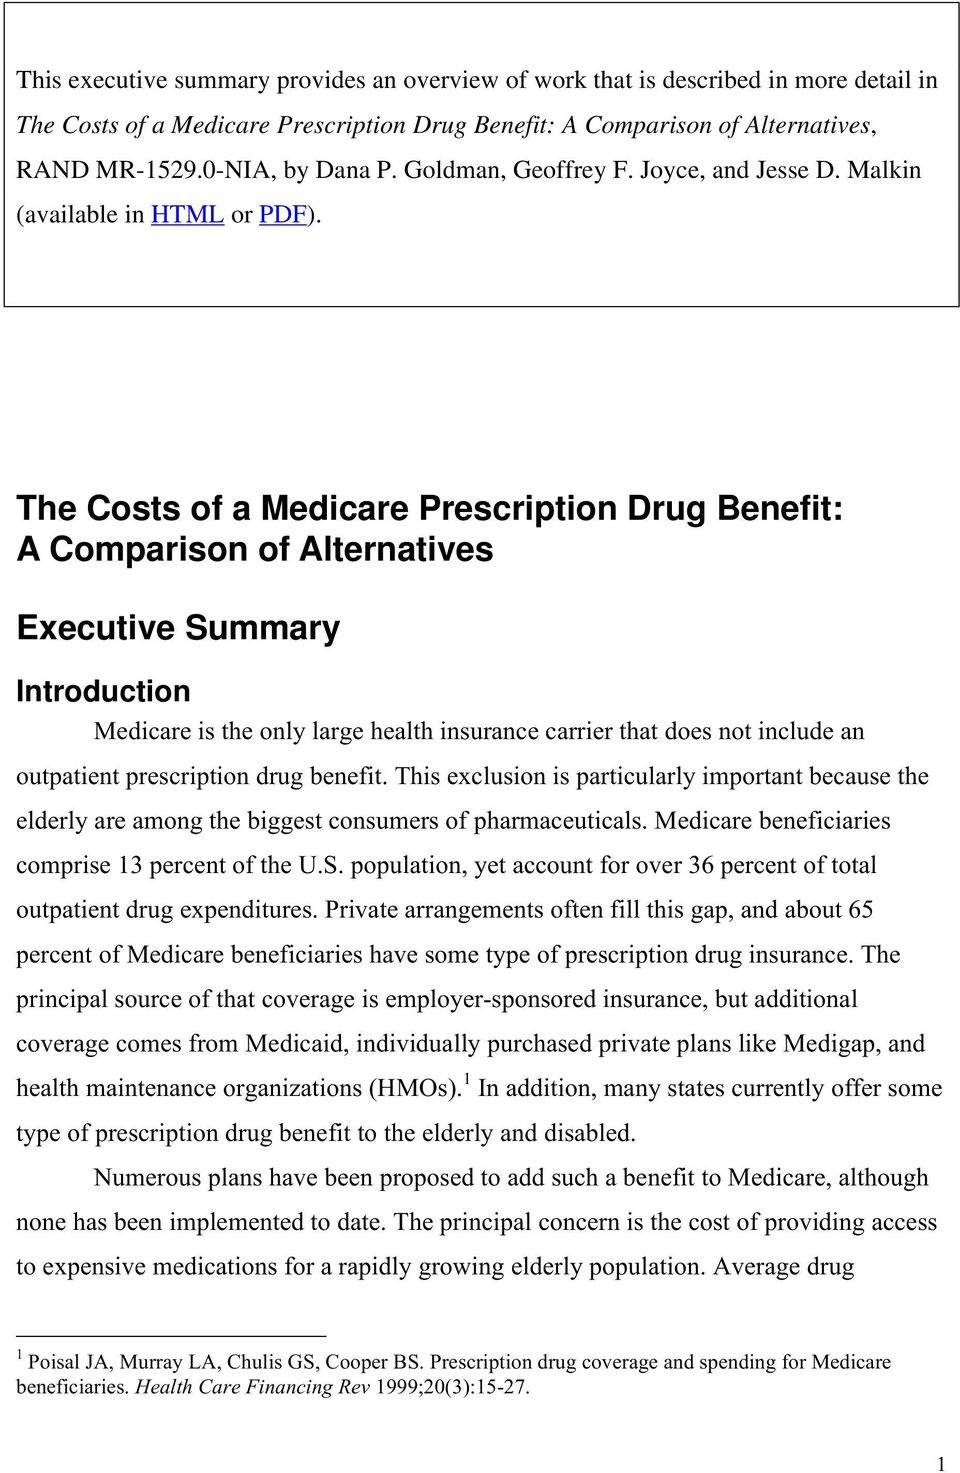 The Costs of a Medicare Prescription Drug Benefit: A Comparison of Alternatives Executive Summary Introduction Medicare is the only large health insurance carrier that does not include an outpatient